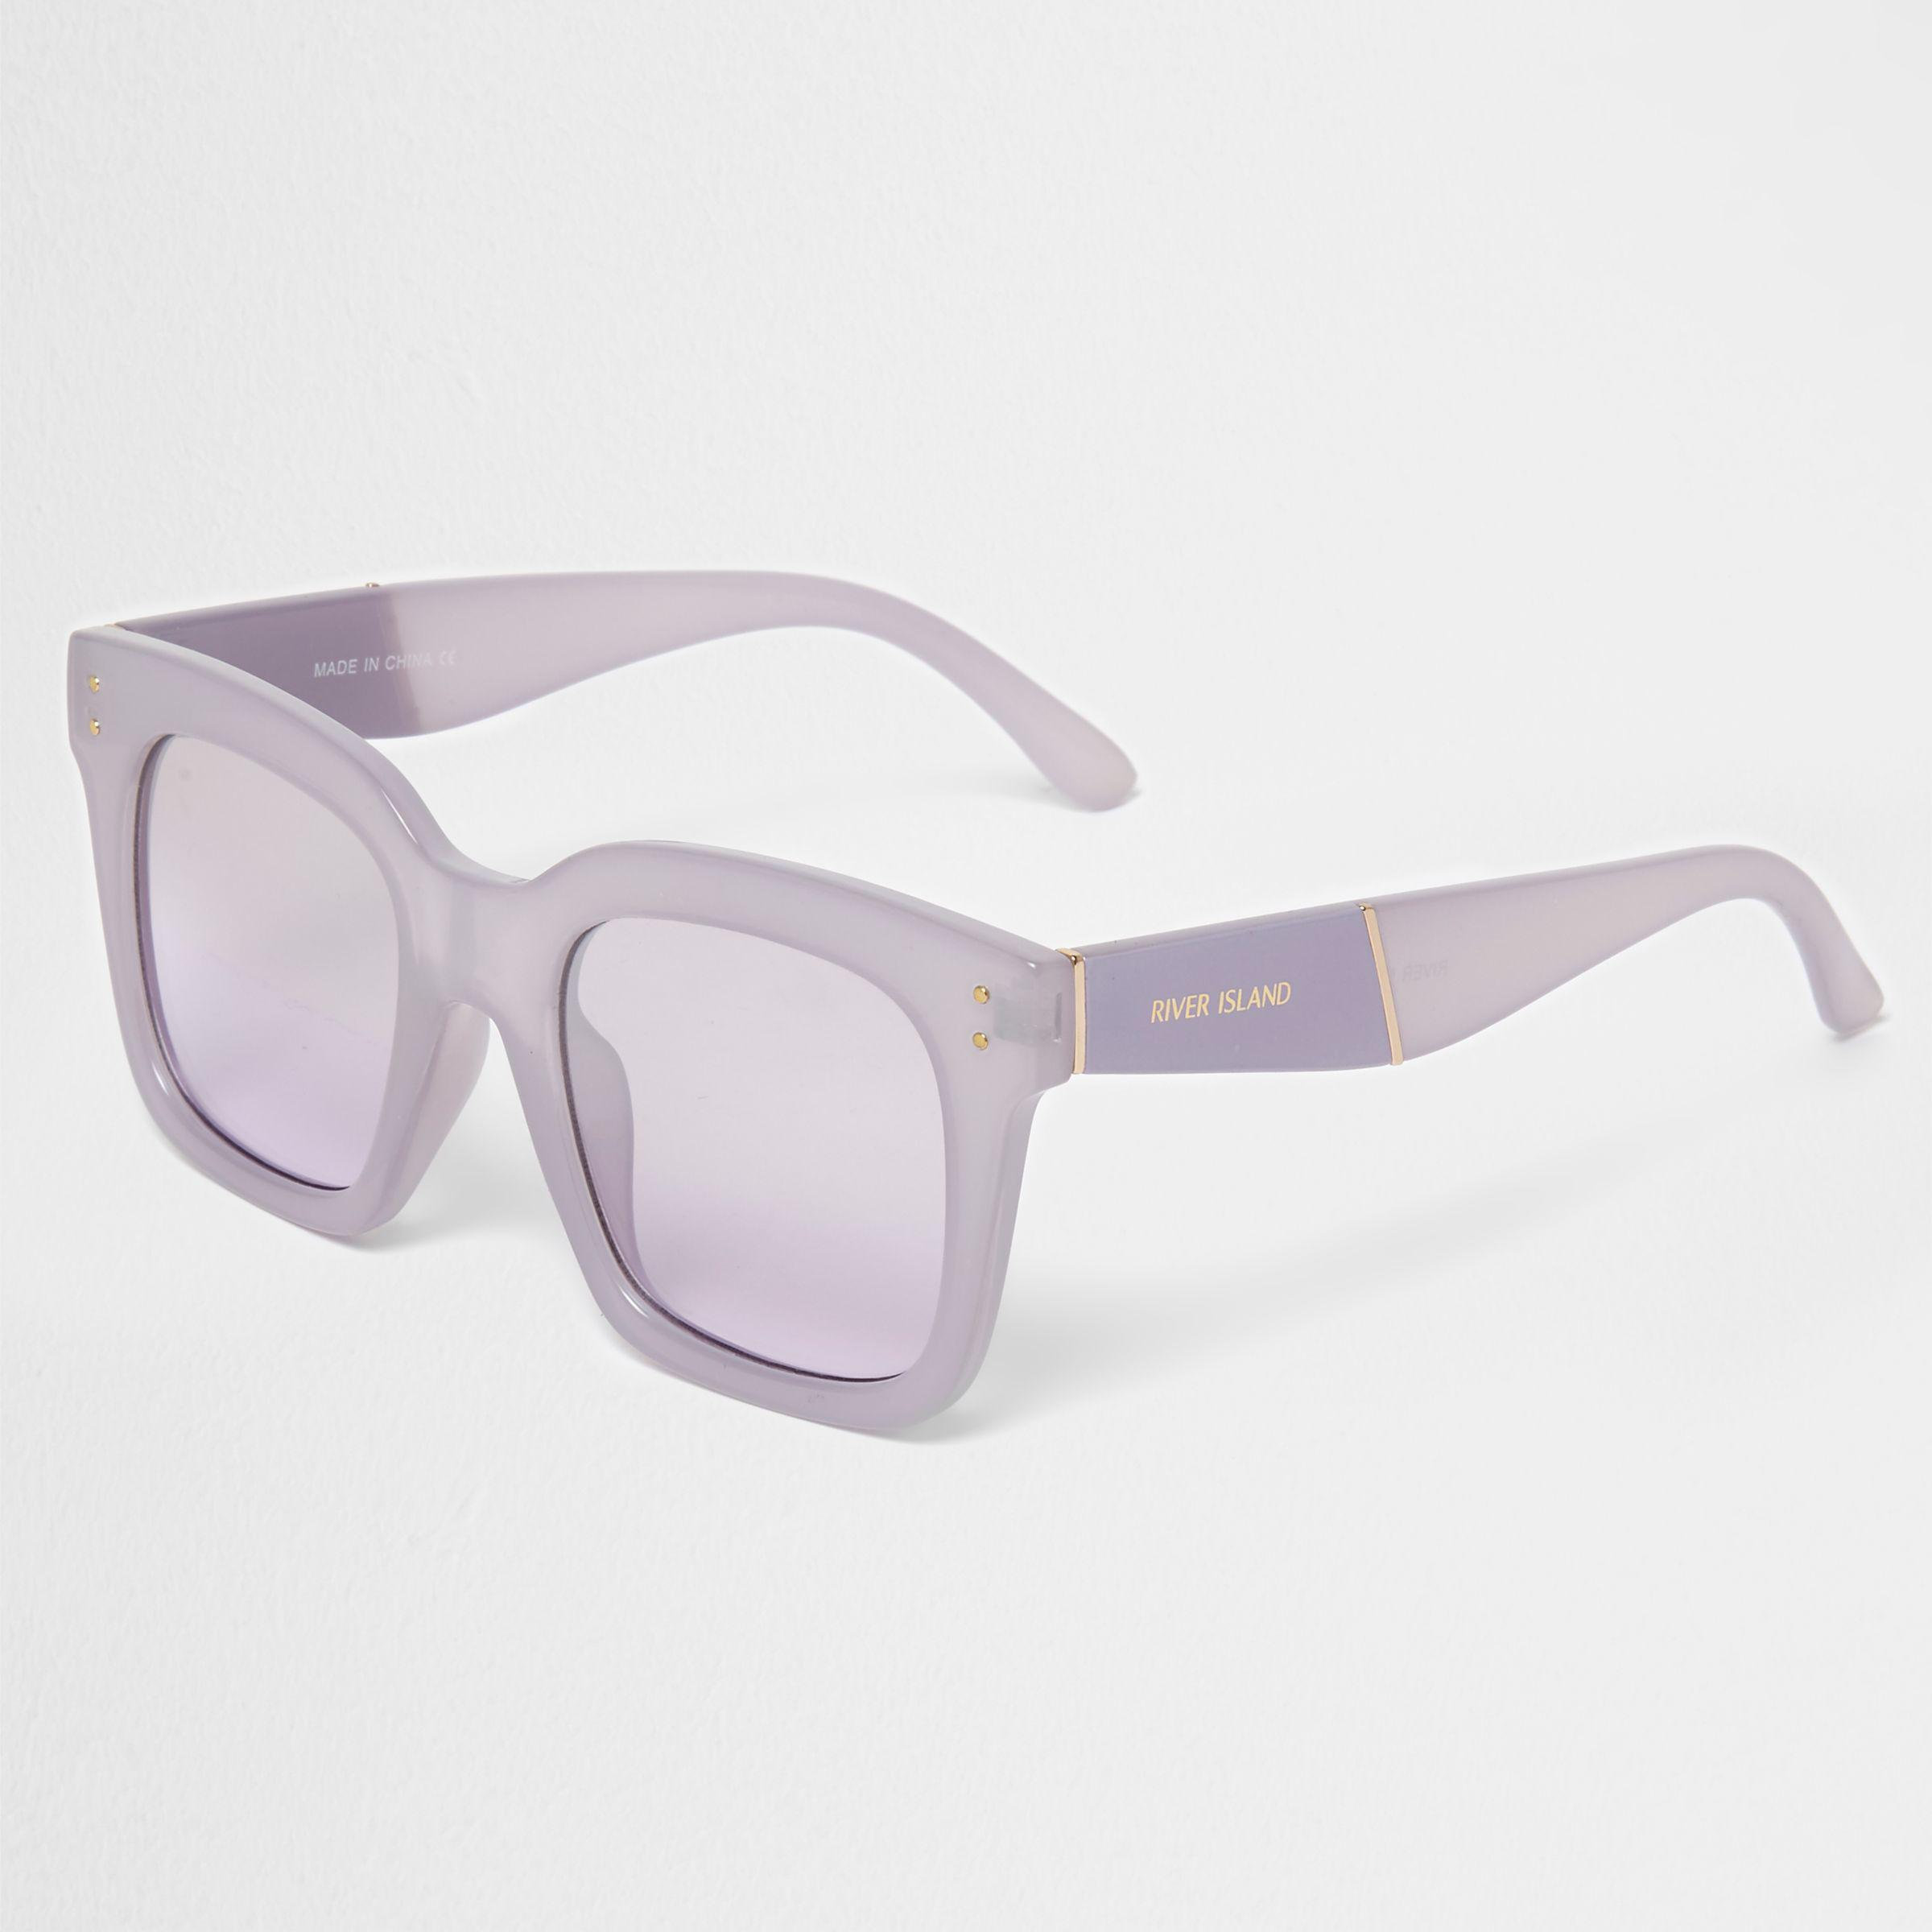 218c92bc406ac River Island Lilac Square Frame Oversized Sunglasses in Purple - Lyst